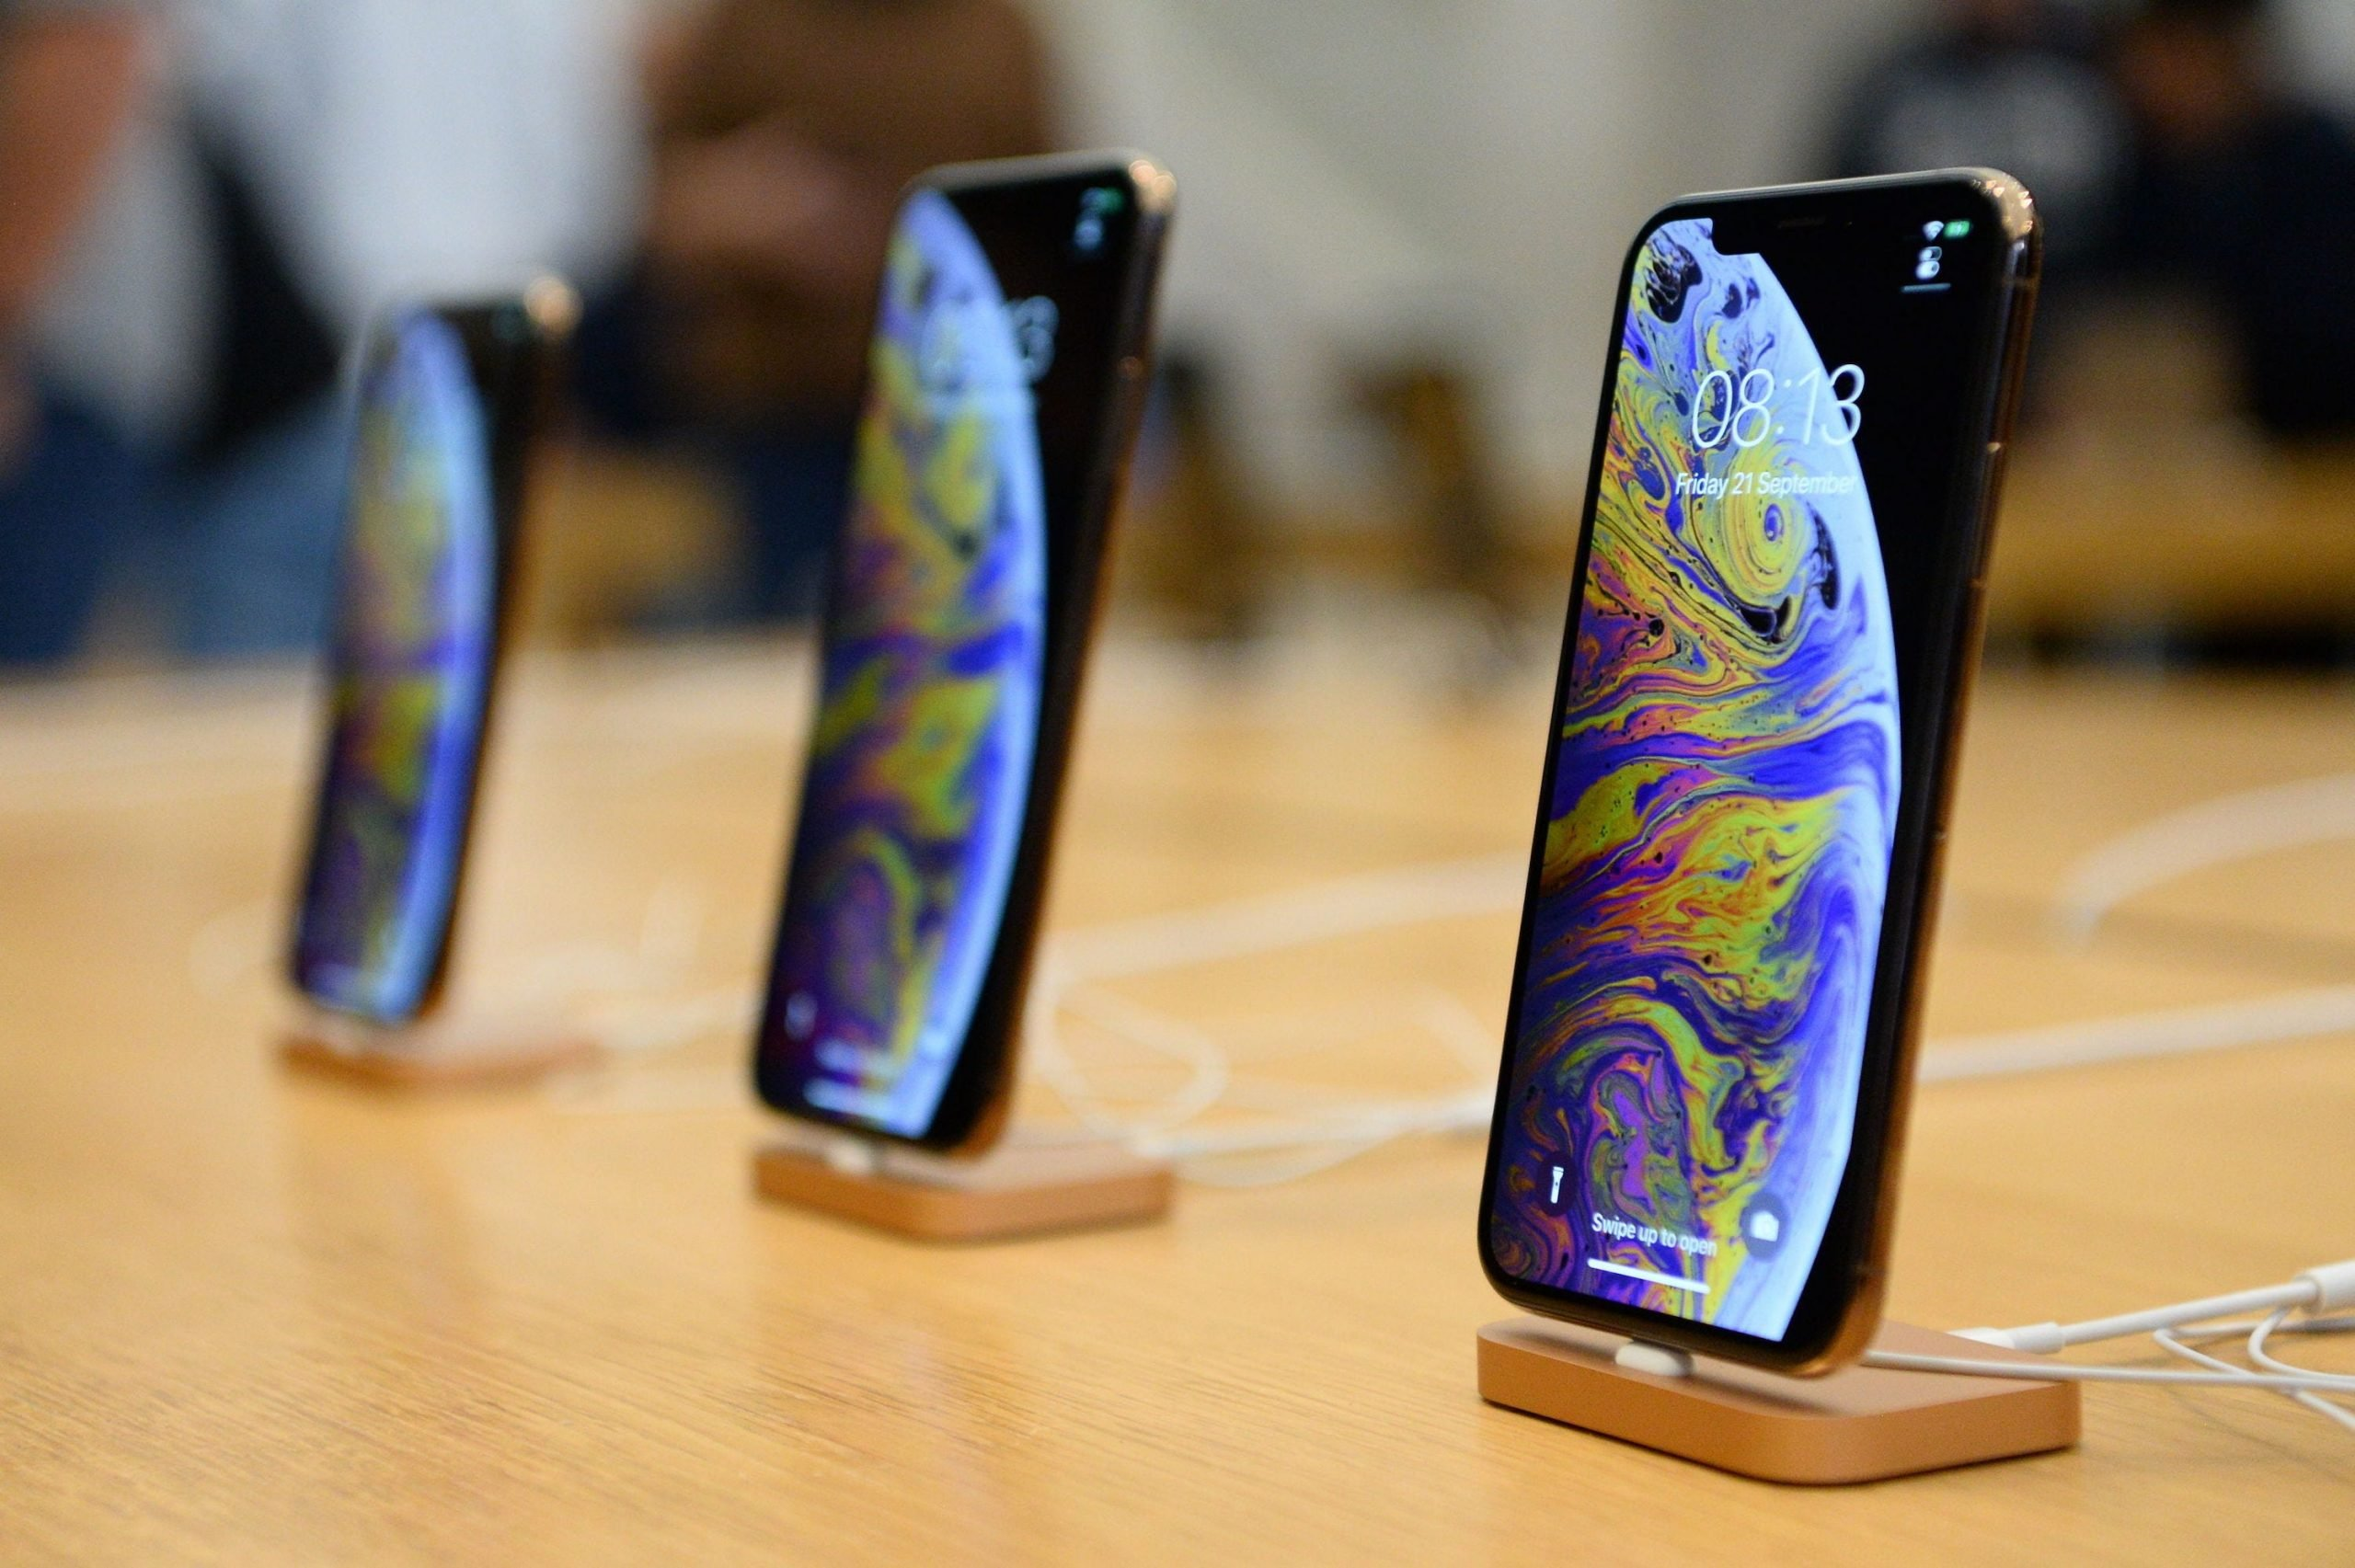 Rumor has it that production of the iPhone X Gold has begun